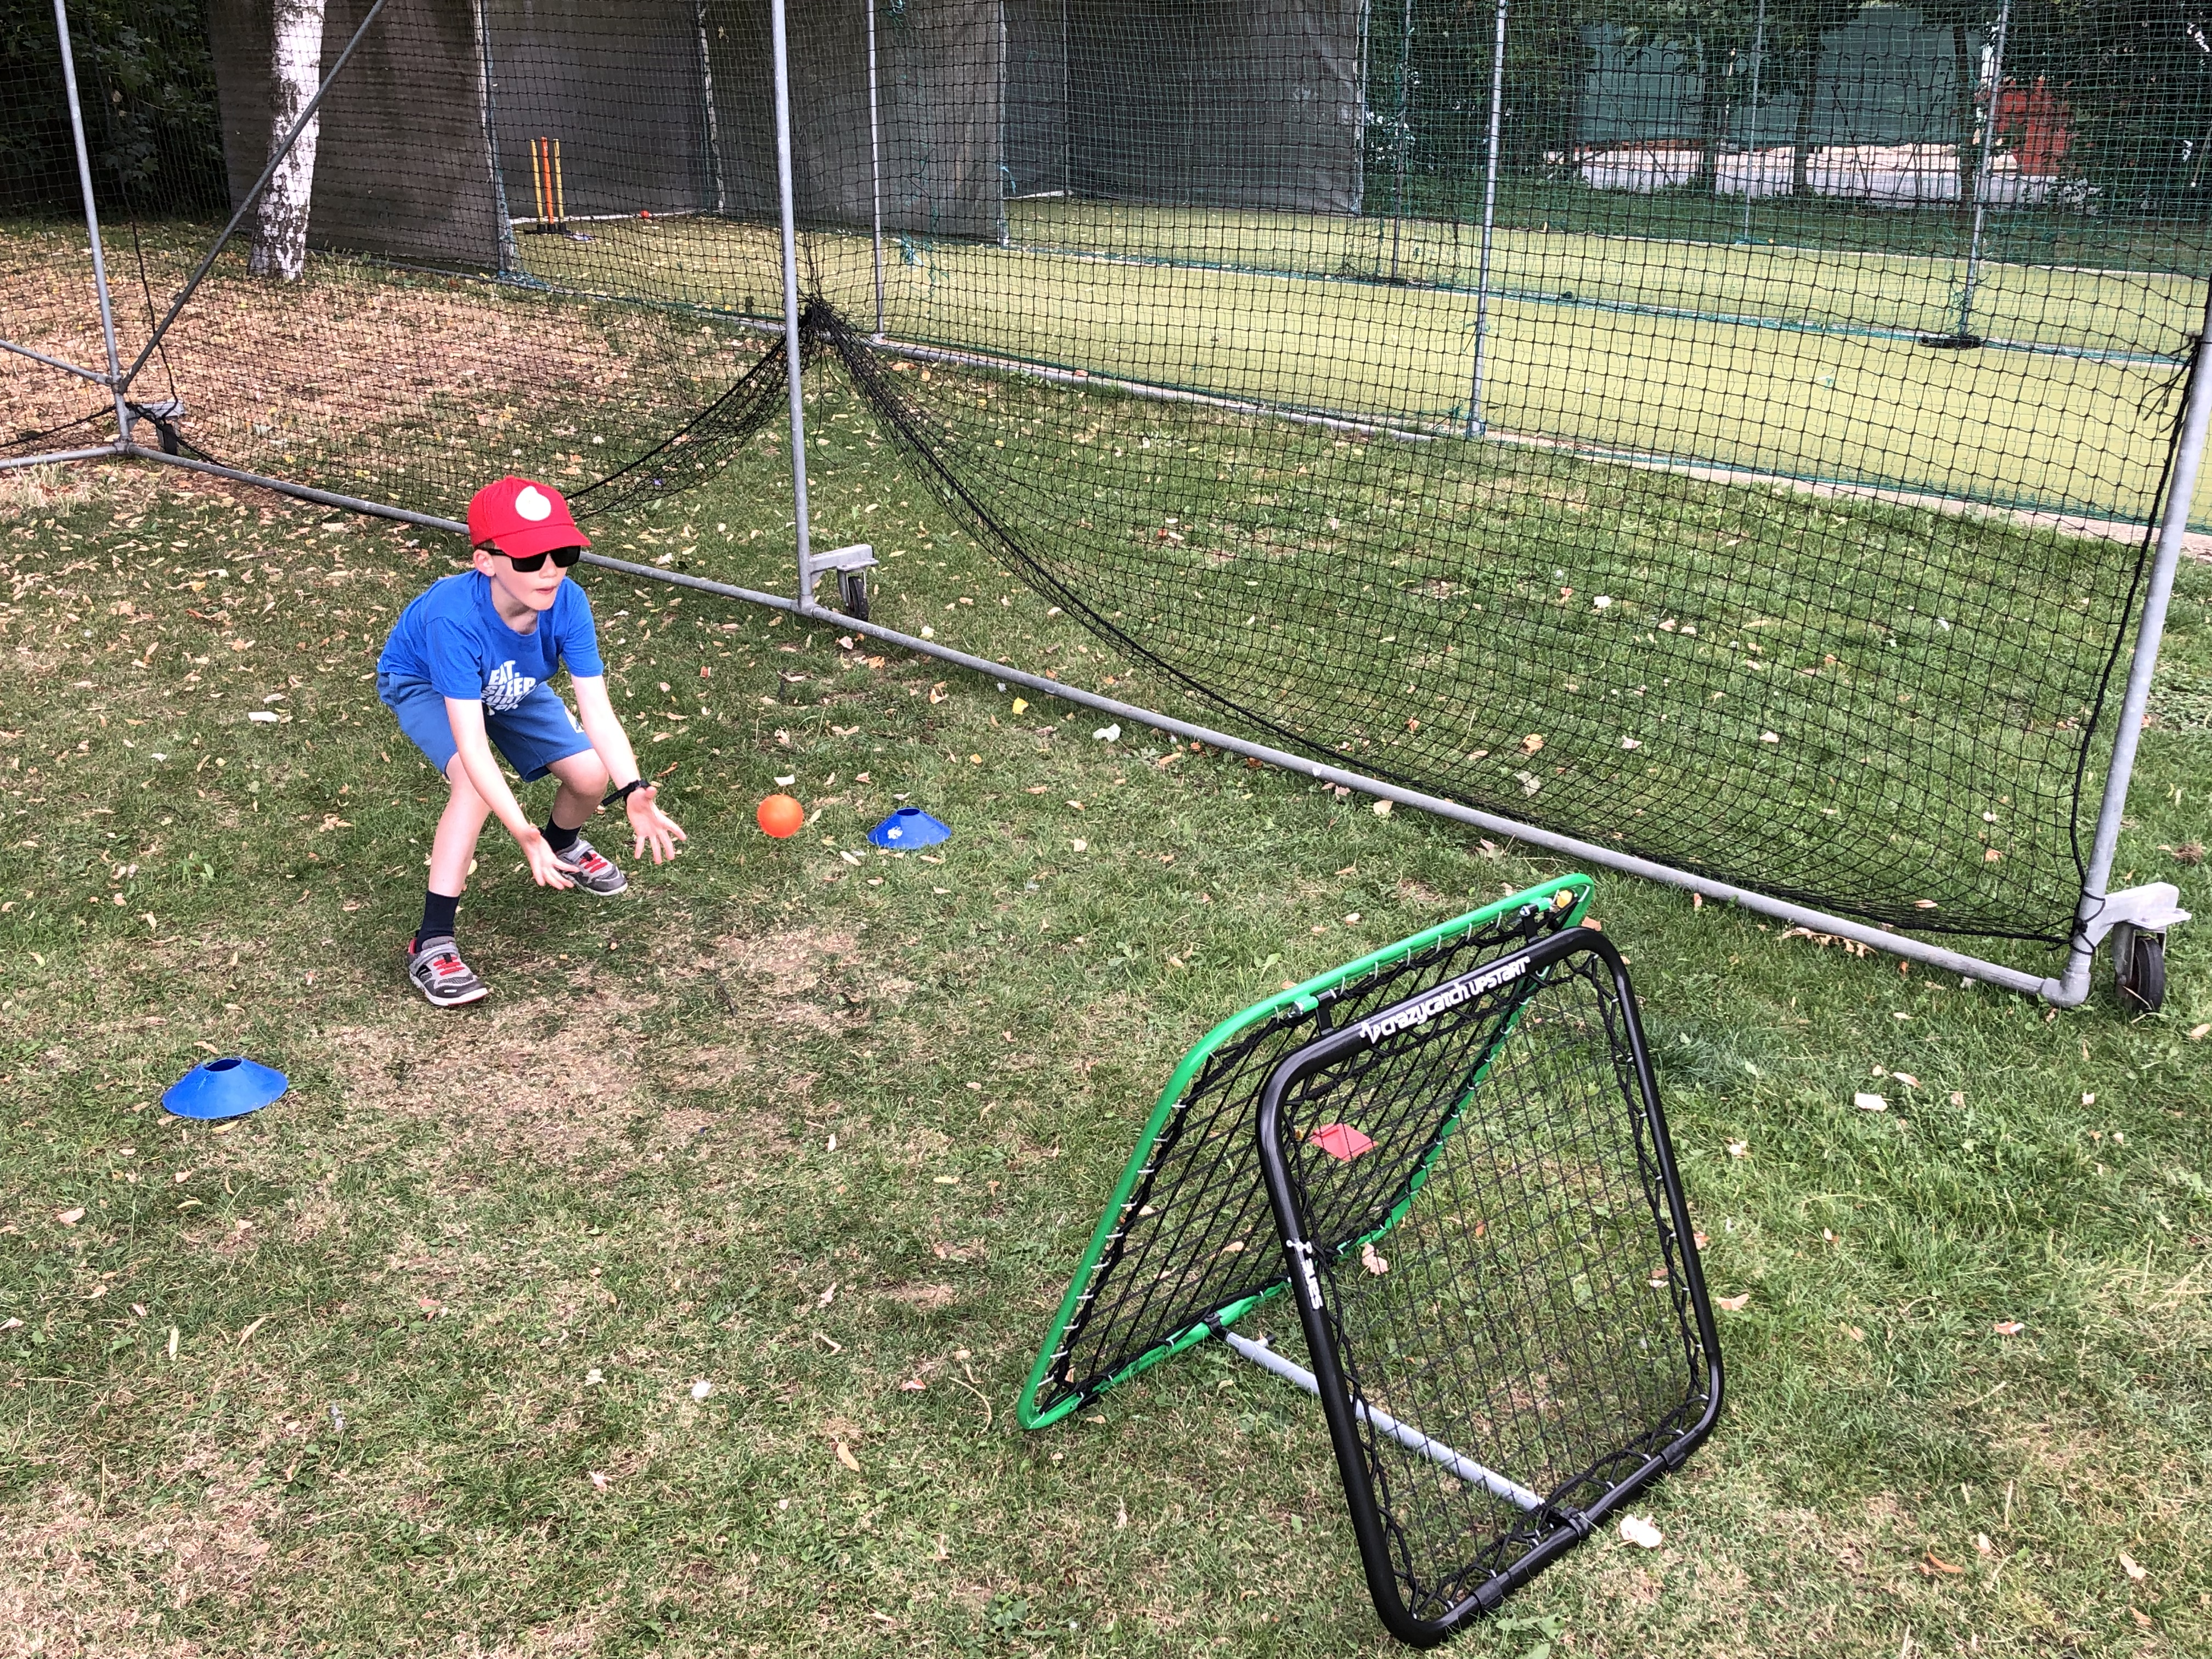 Crazy Catch challenge at 2019 Falcon Summer Camp at Finchley Cricket Club